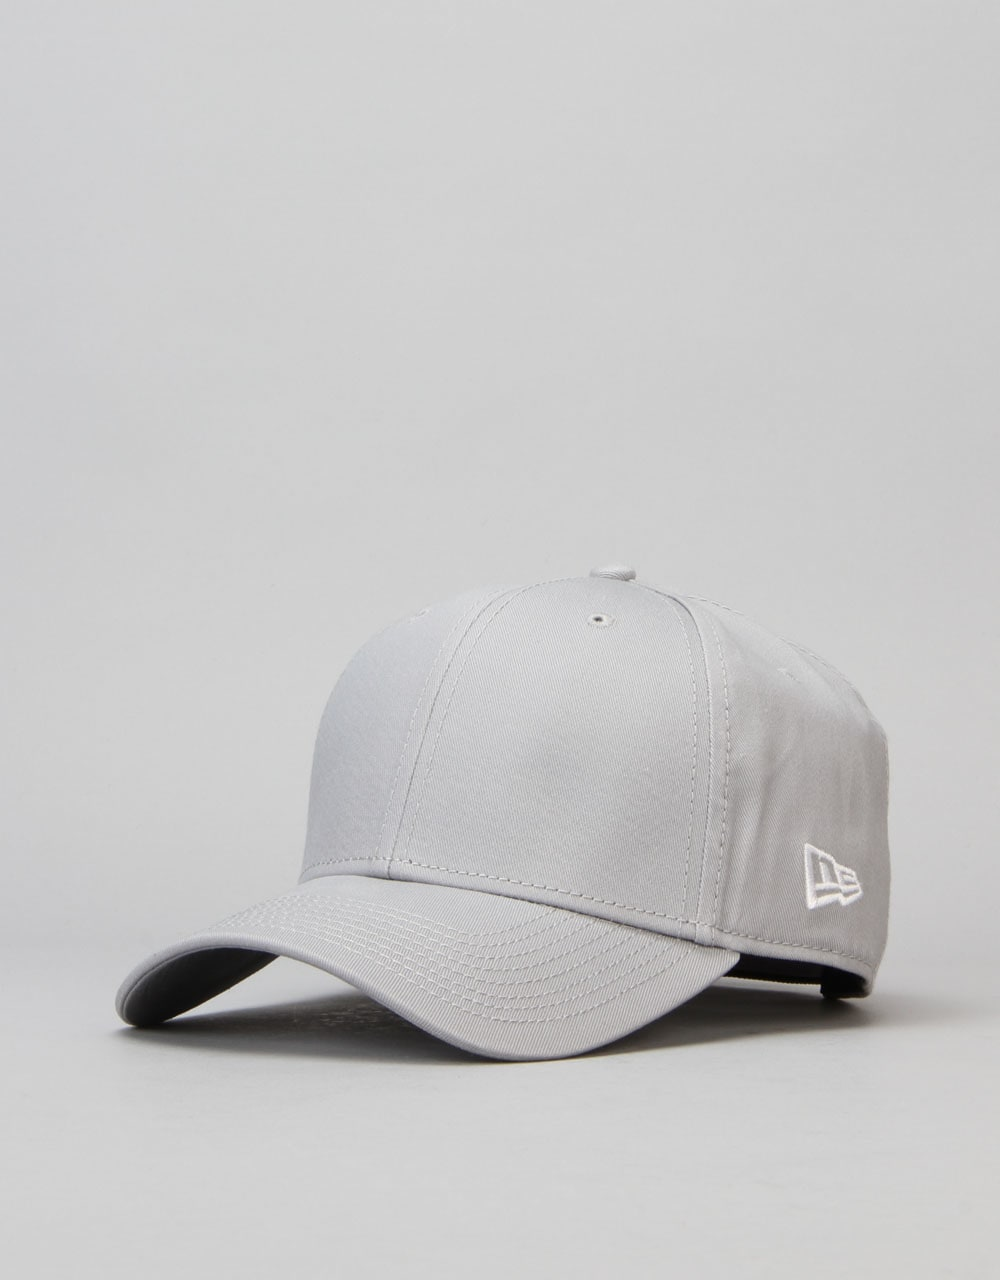 New Era 9Forty Flag Collection Cap - Grey White  2315b2d8b6dd